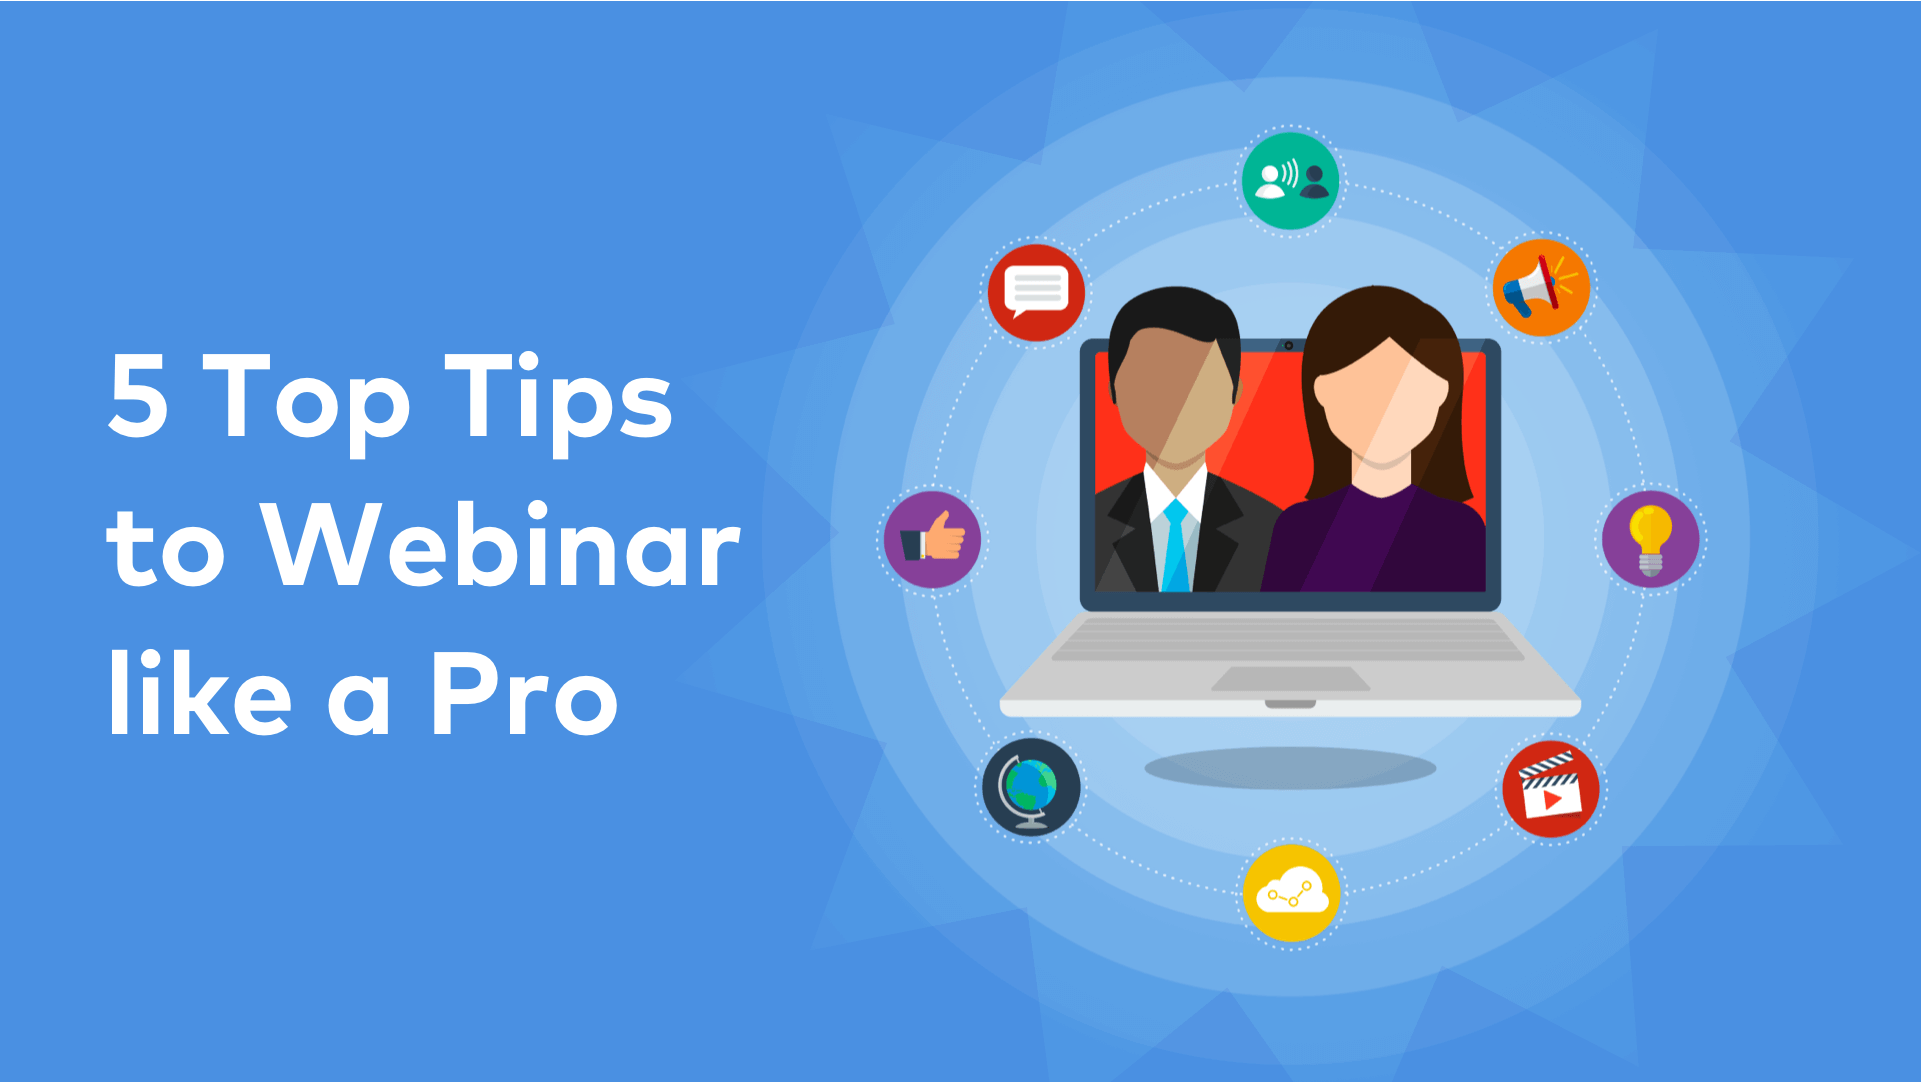 5 Top Tips to Webinar like a Pro